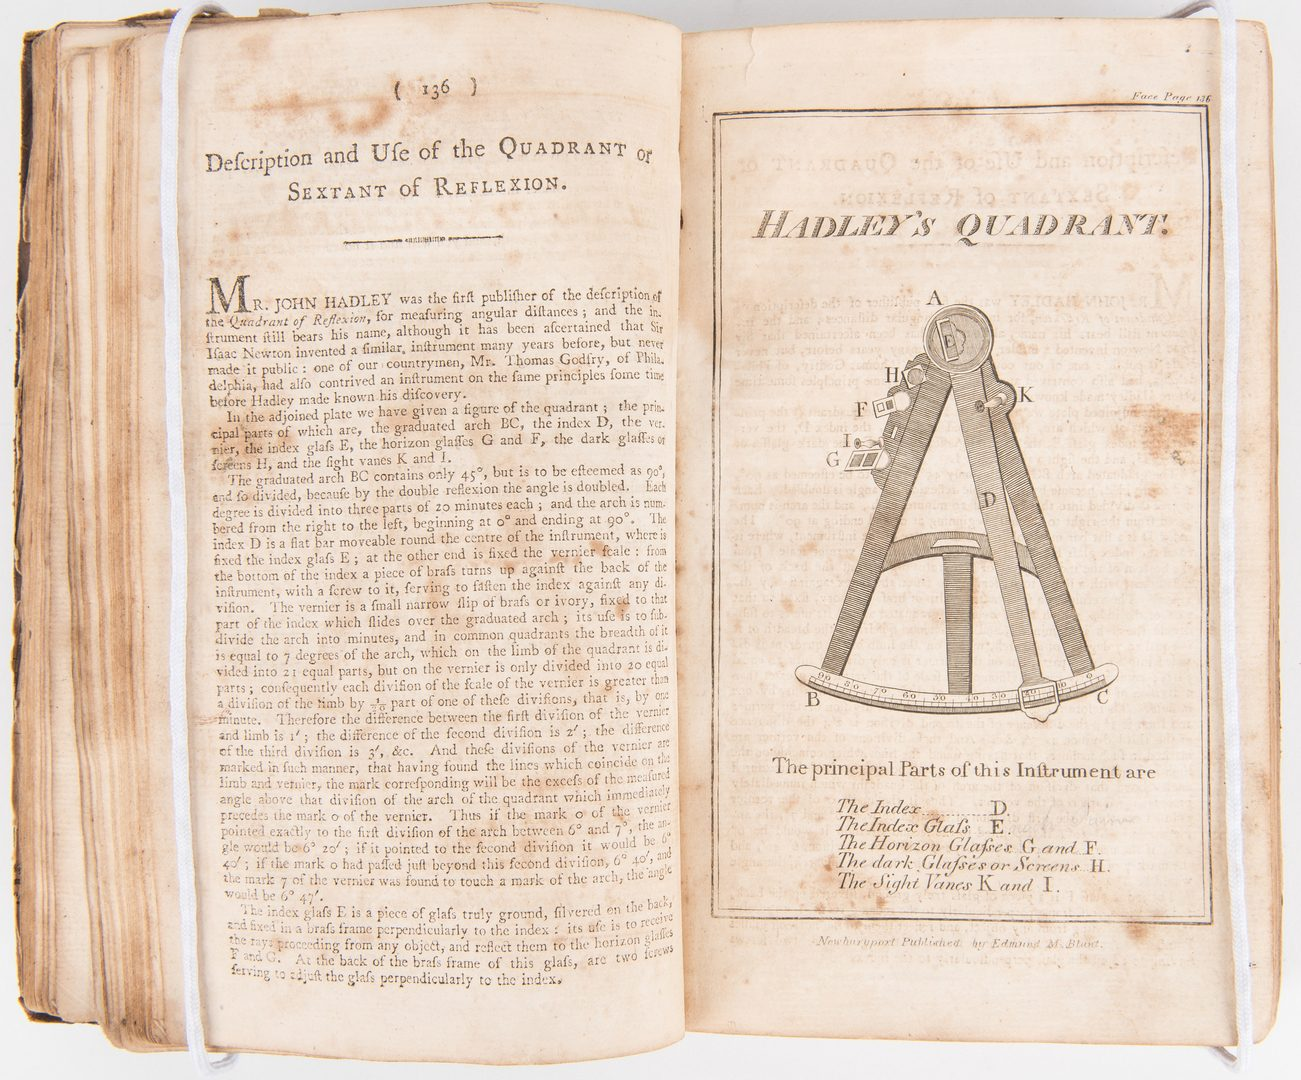 Lot 277: Marshall Family, Bowditch, New American Practical Navigator, 1802